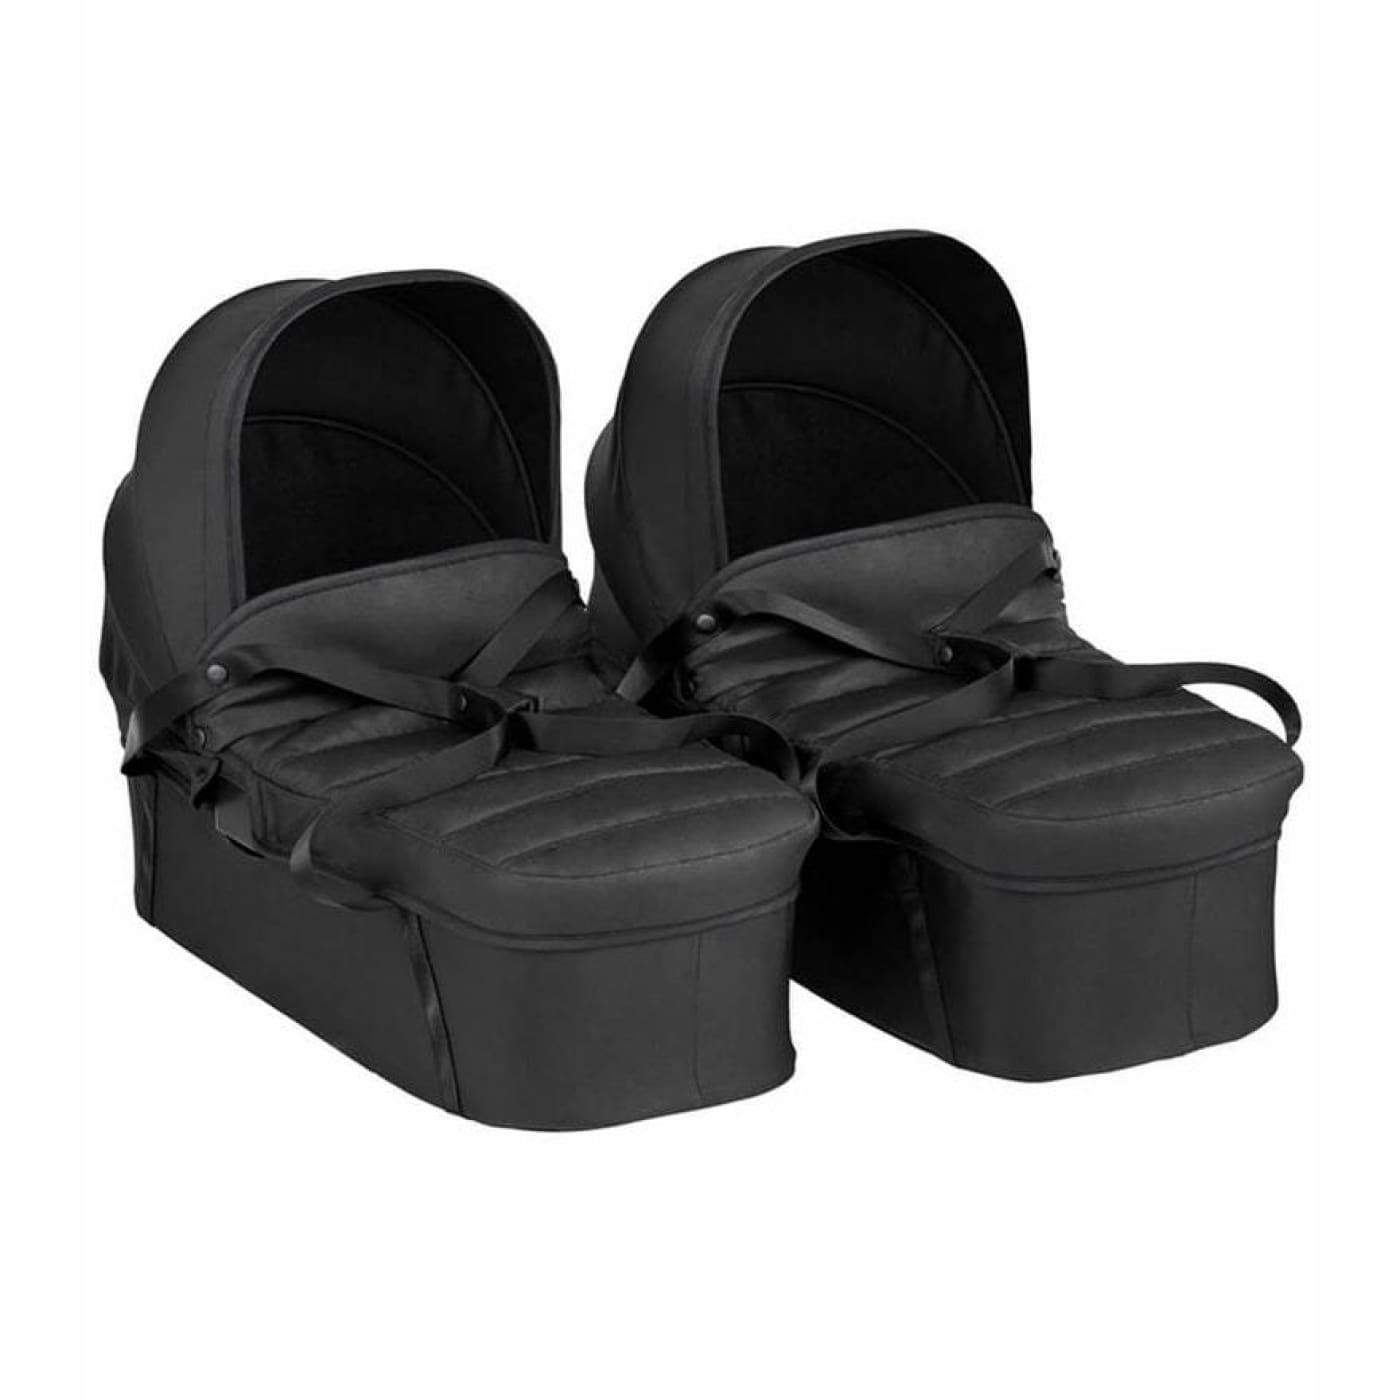 Baby Jogger City Tour 2 Double Bassinet - Jet - PRAMS & STROLLERS - BASS/CARRY COTS/STANDS